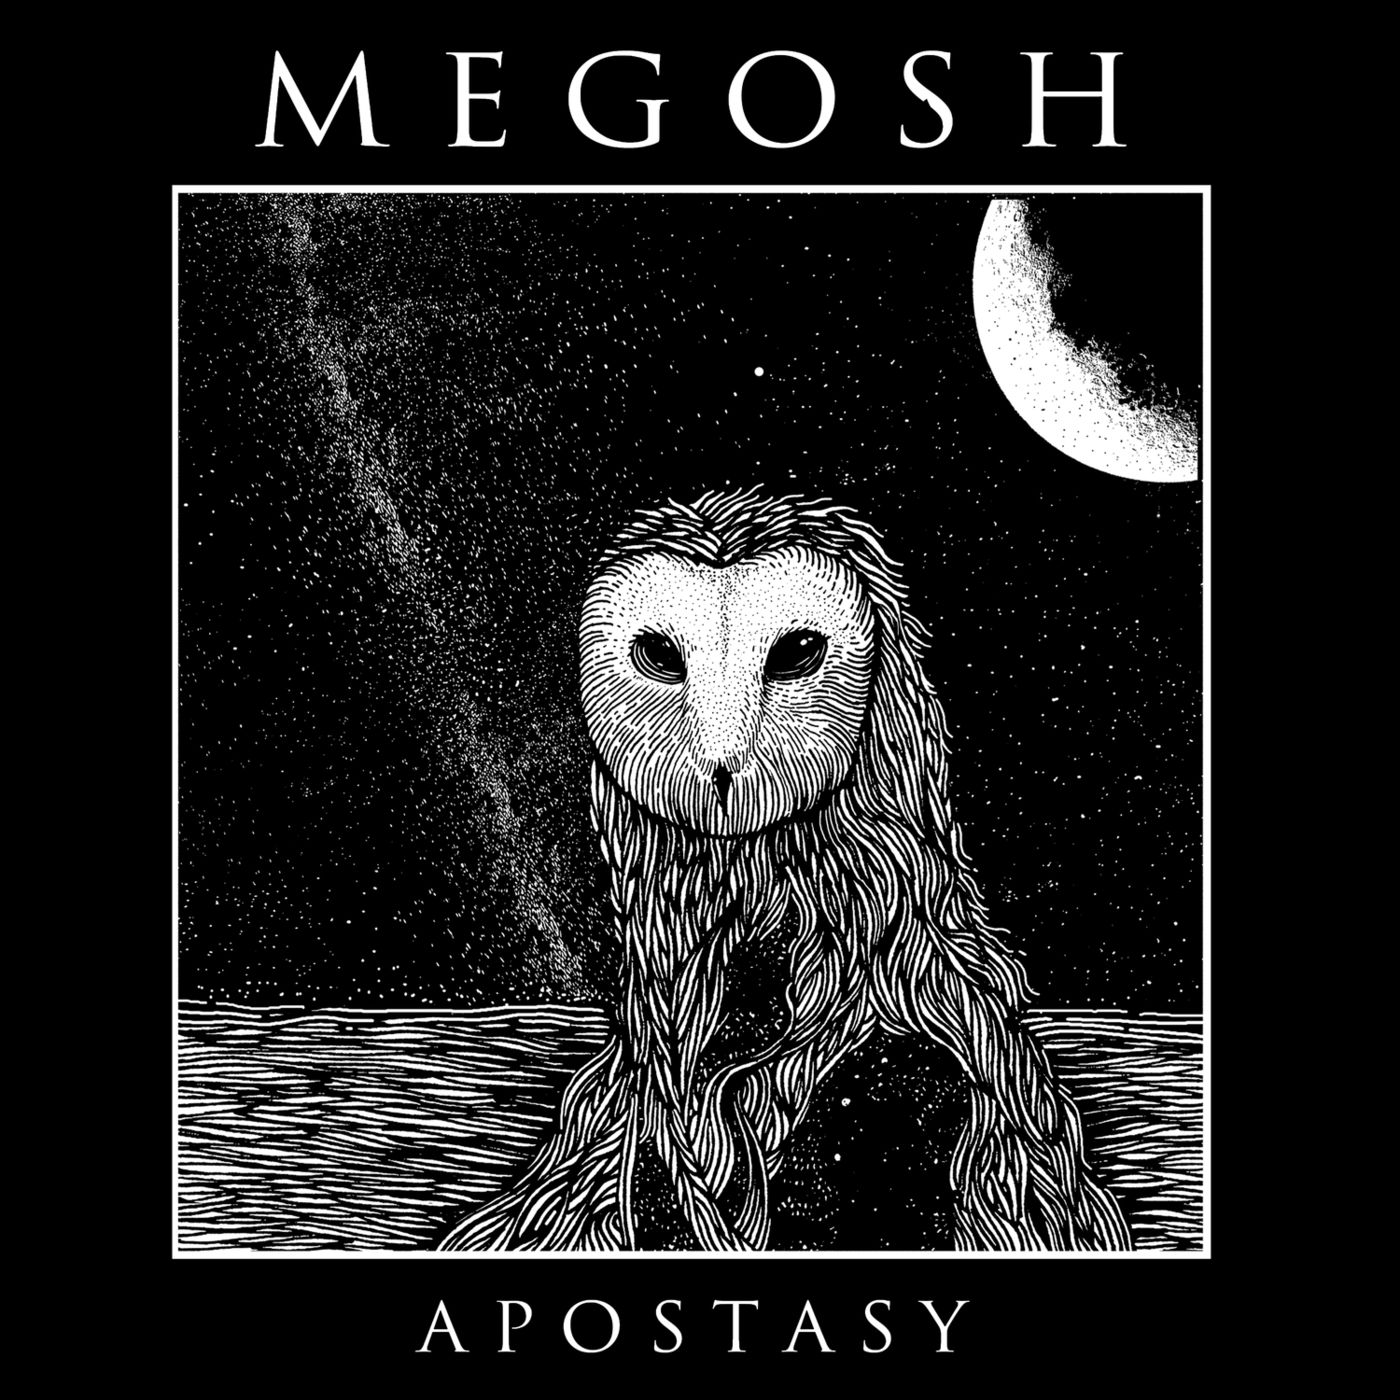 Megosh - I Stole from the Dead [single] (2016)